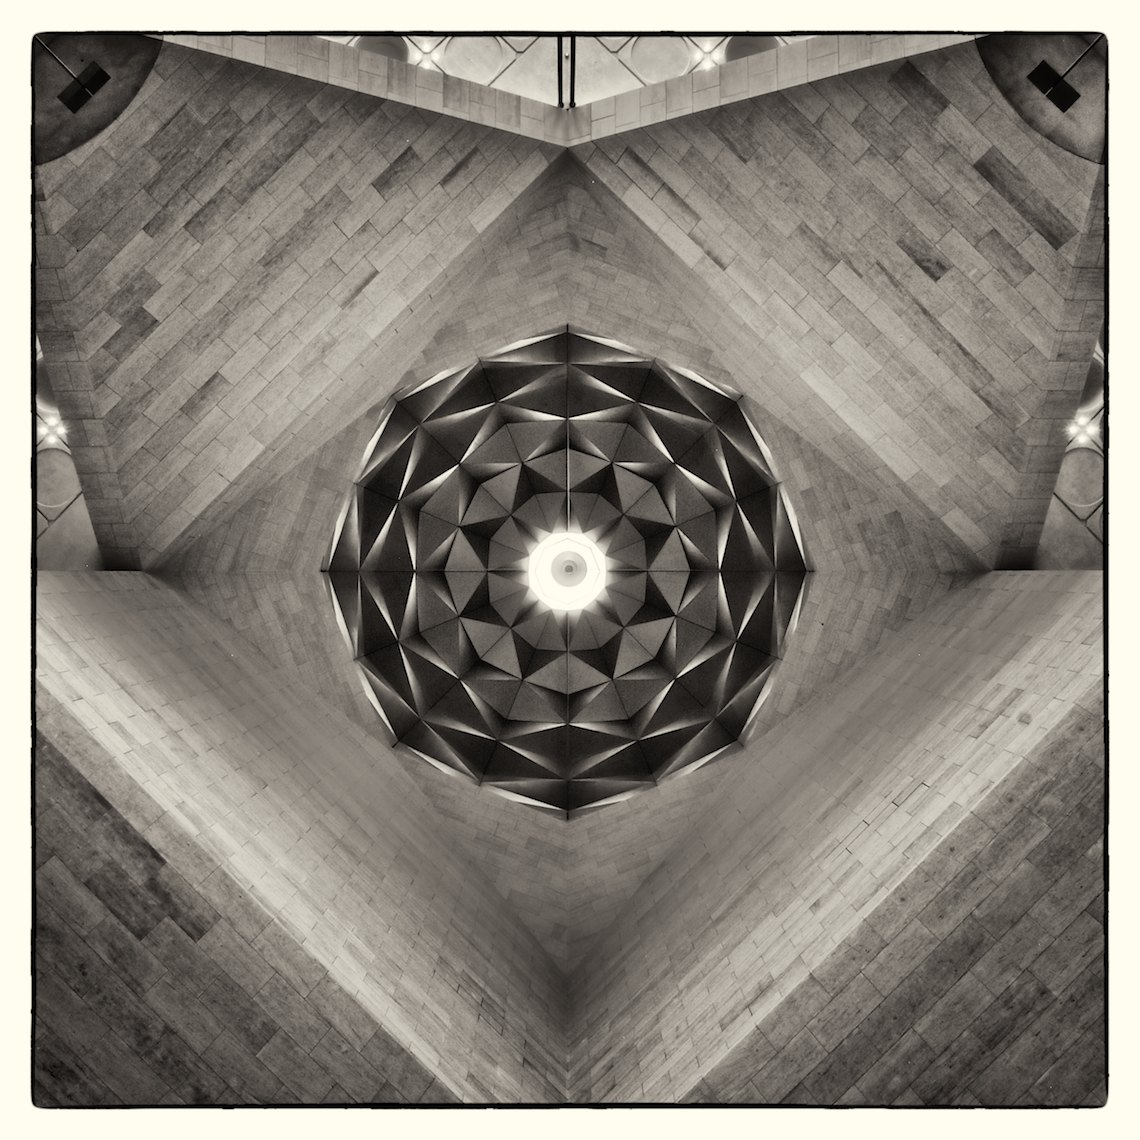 Qatar Doha Museum of Islamic Art interior black and white Dome square